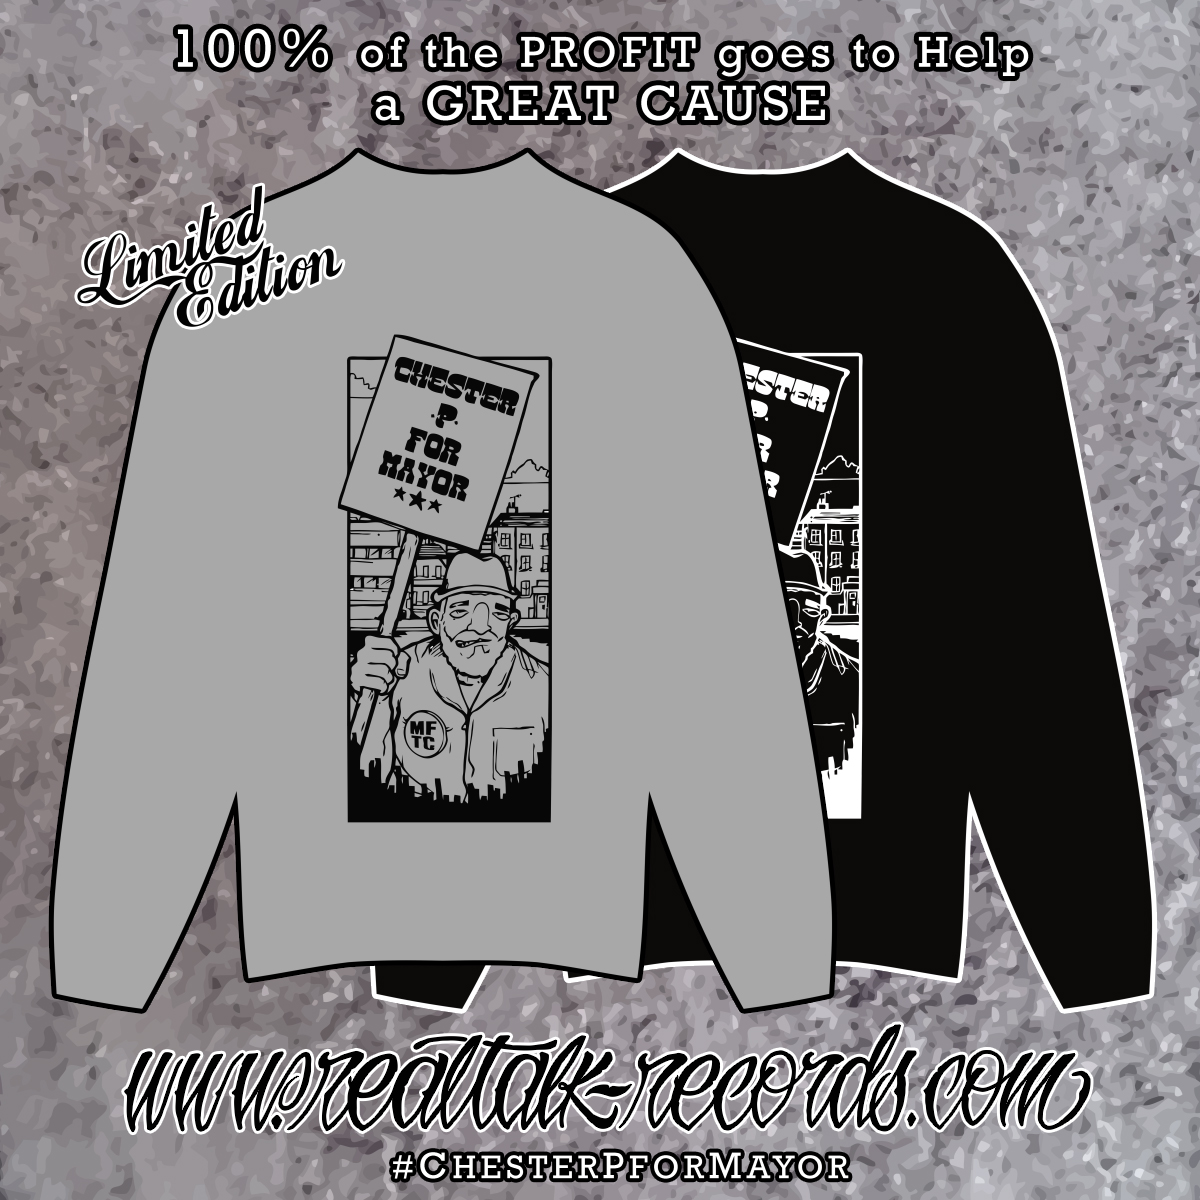 CPFM - 2 sweatshirts on same image - PROMO IMAGE 01